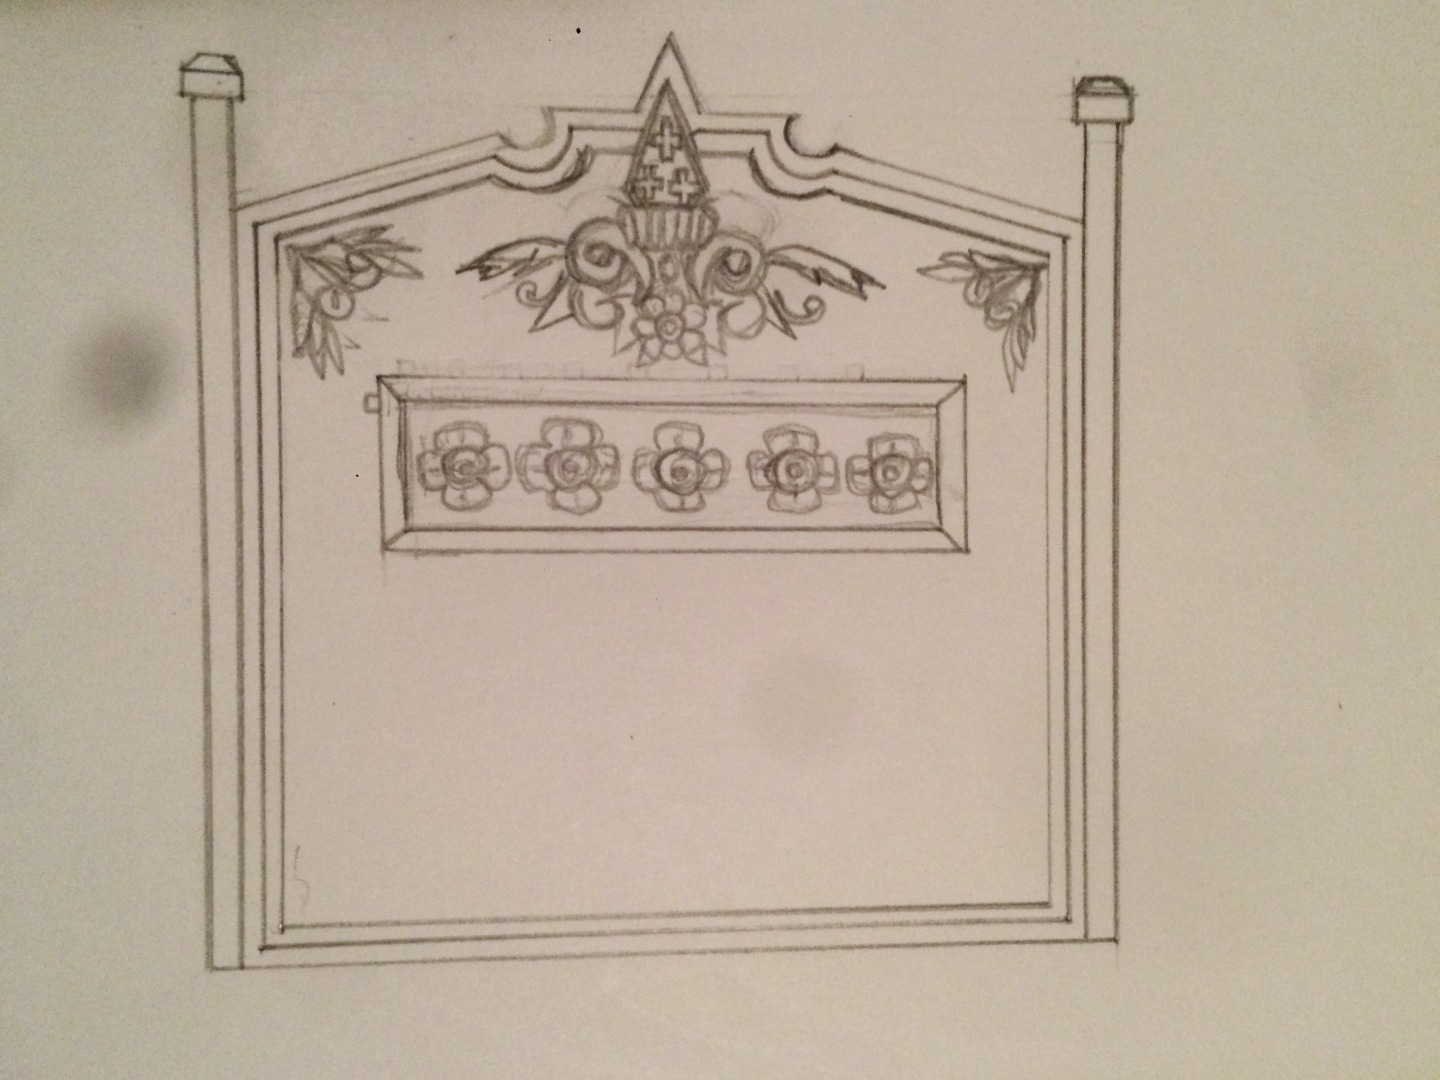 Headboard sketches version 2